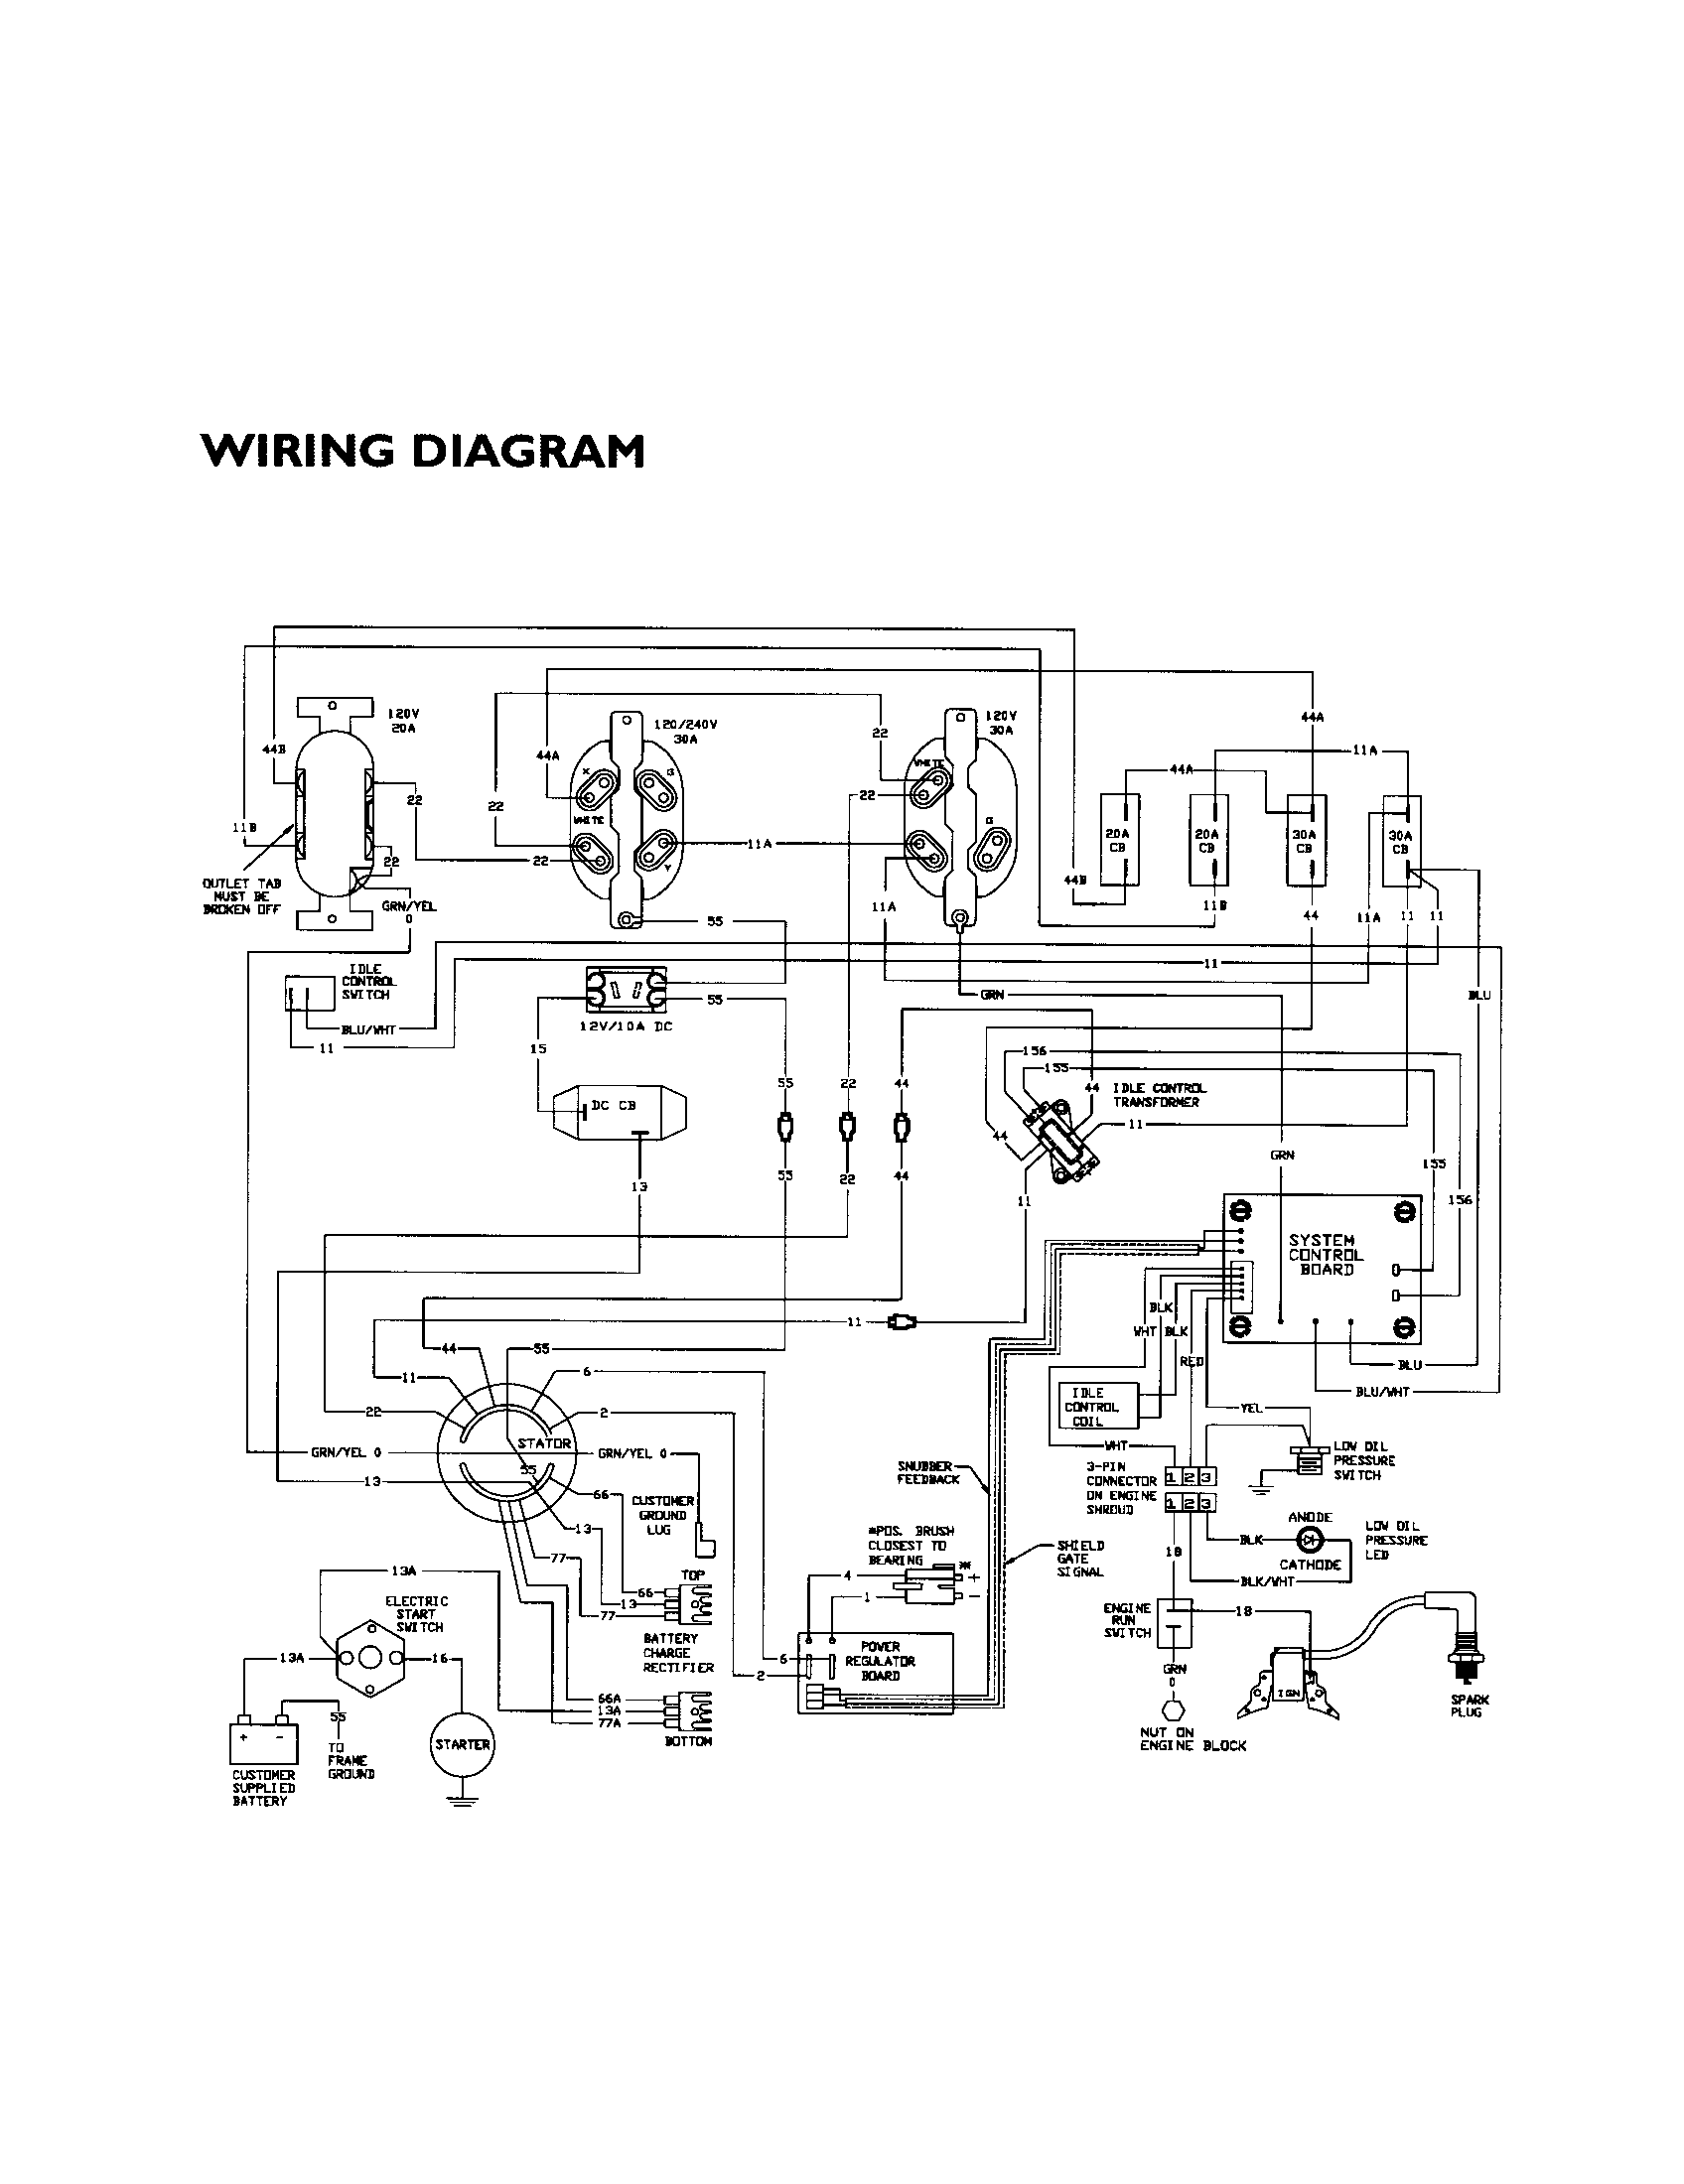 P0403635 00003 generac gp5500 wiring diagram wiring diagrams generac 7000exl wiring diagram at edmiracle.co